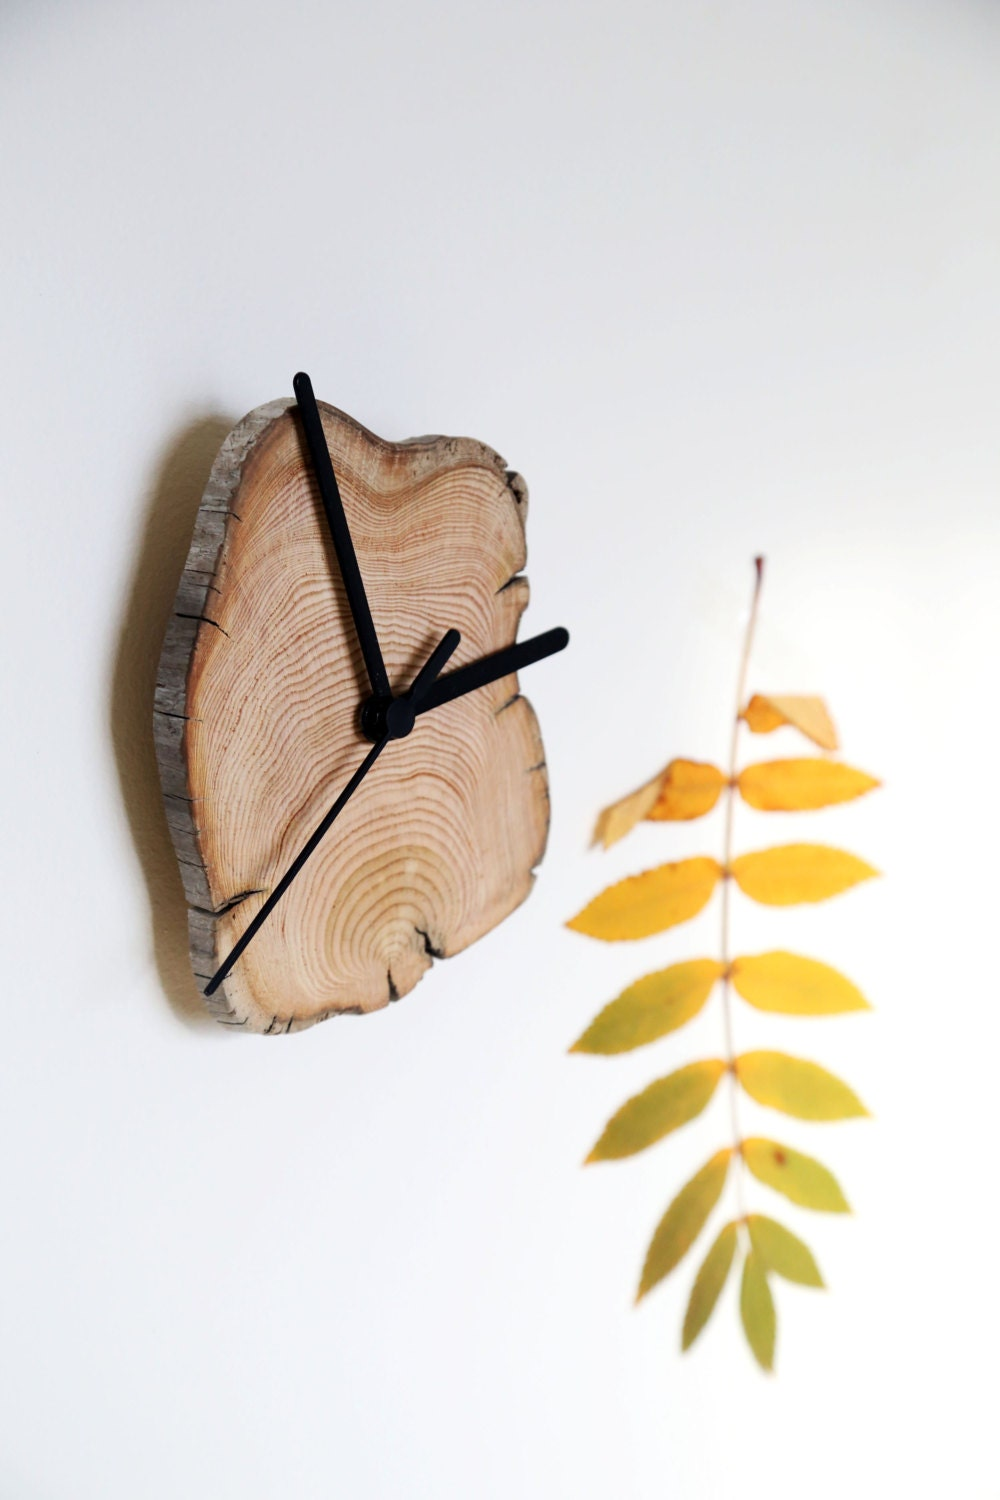 horloge de bois flott horloge en bois horloge murale. Black Bedroom Furniture Sets. Home Design Ideas